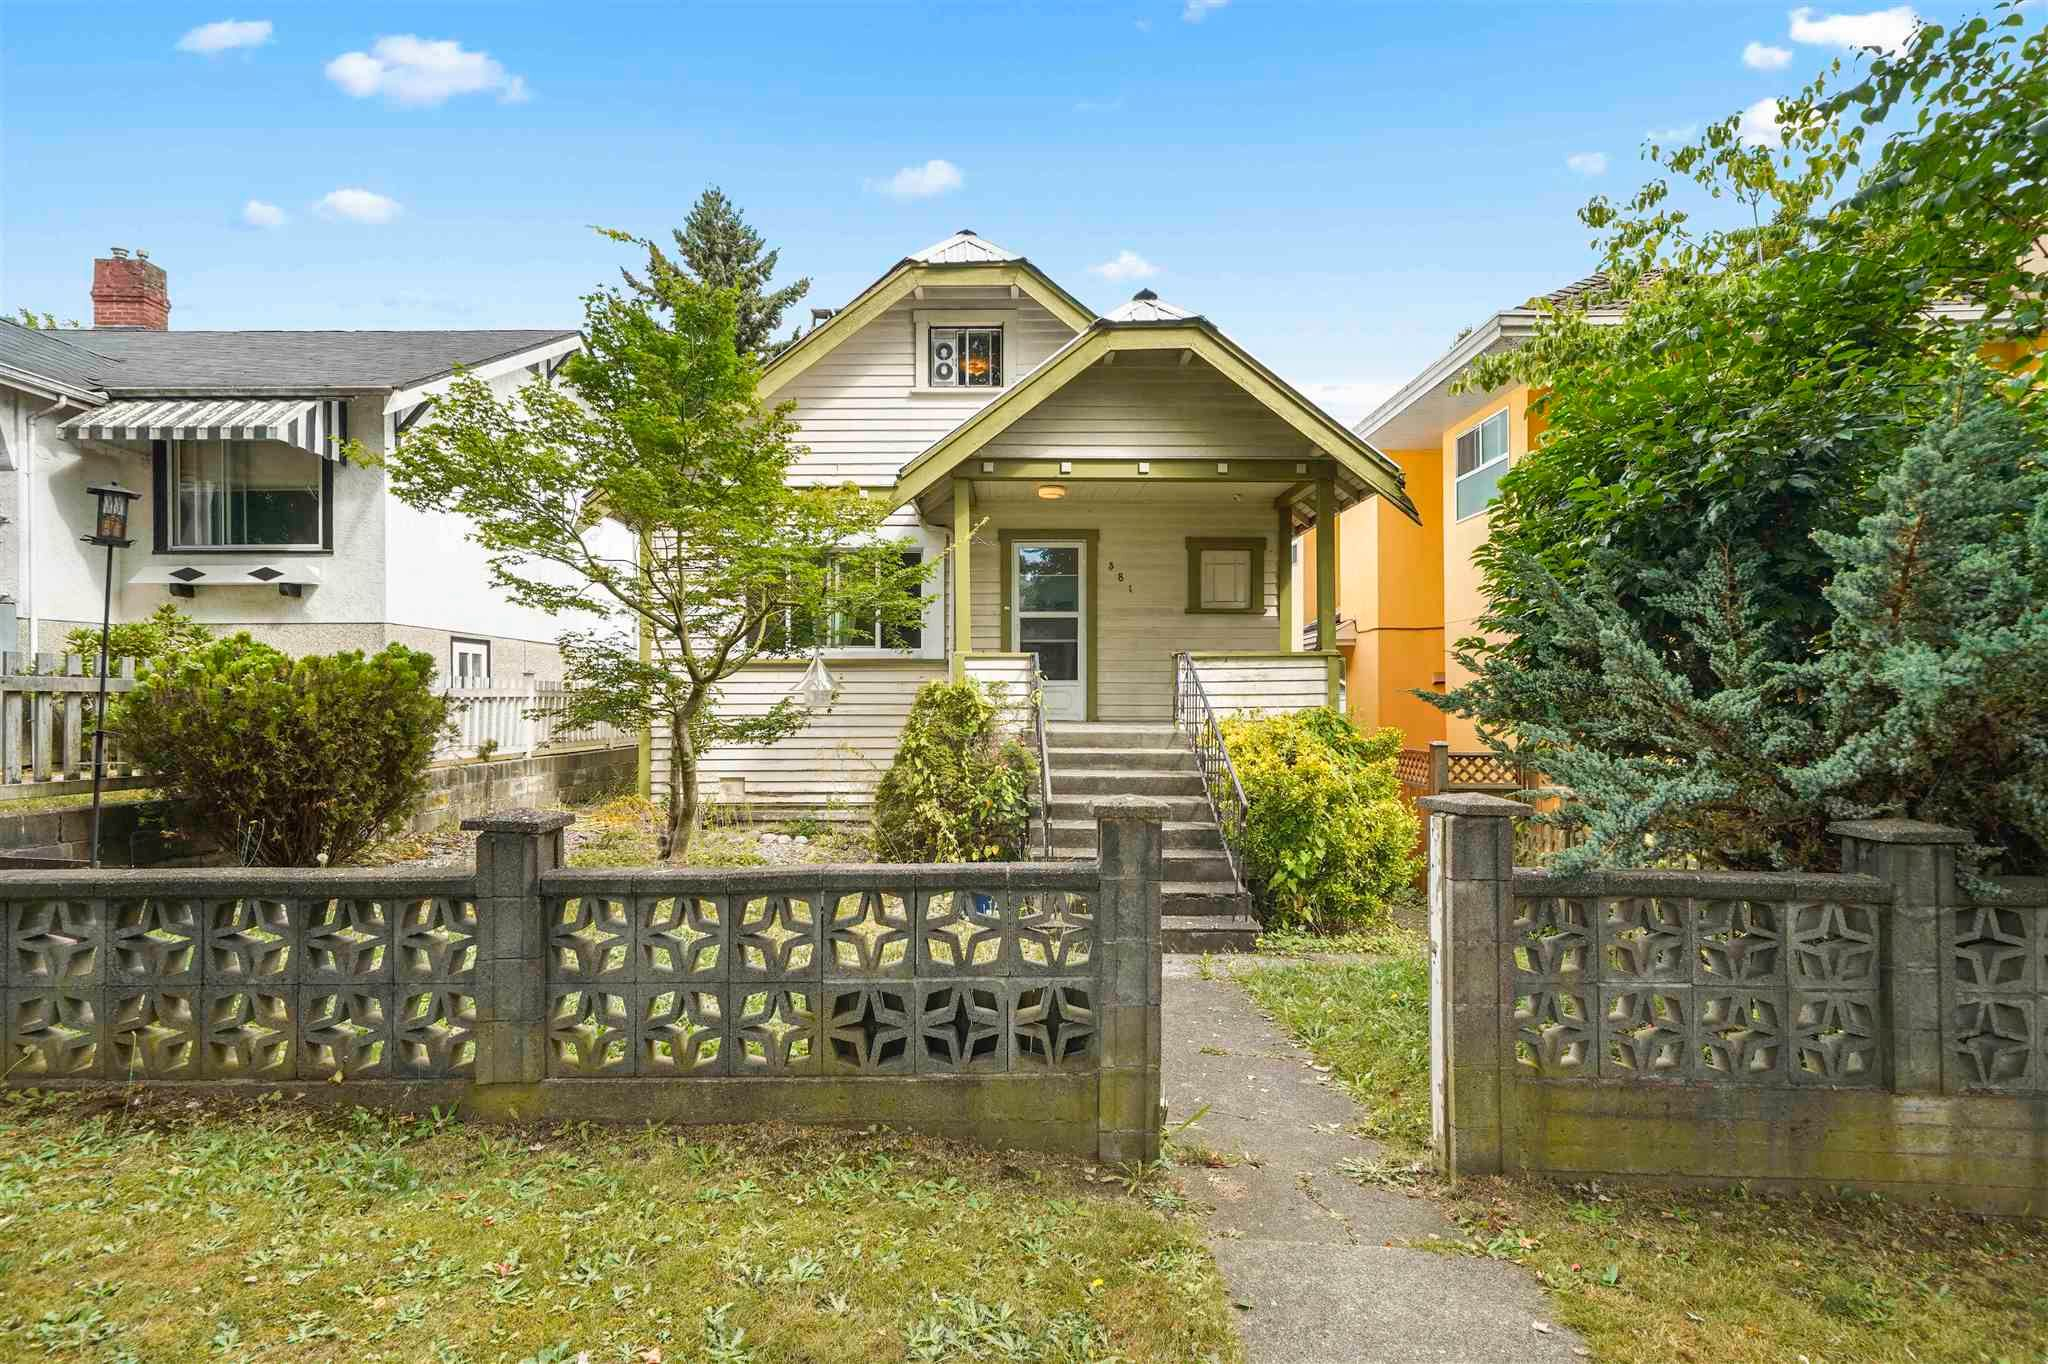 """Main Photo: 381 E 19TH Avenue in Vancouver: Main House for sale in """"Riley Park/Mt.Pleasant"""" (Vancouver East)  : MLS®# R2607959"""